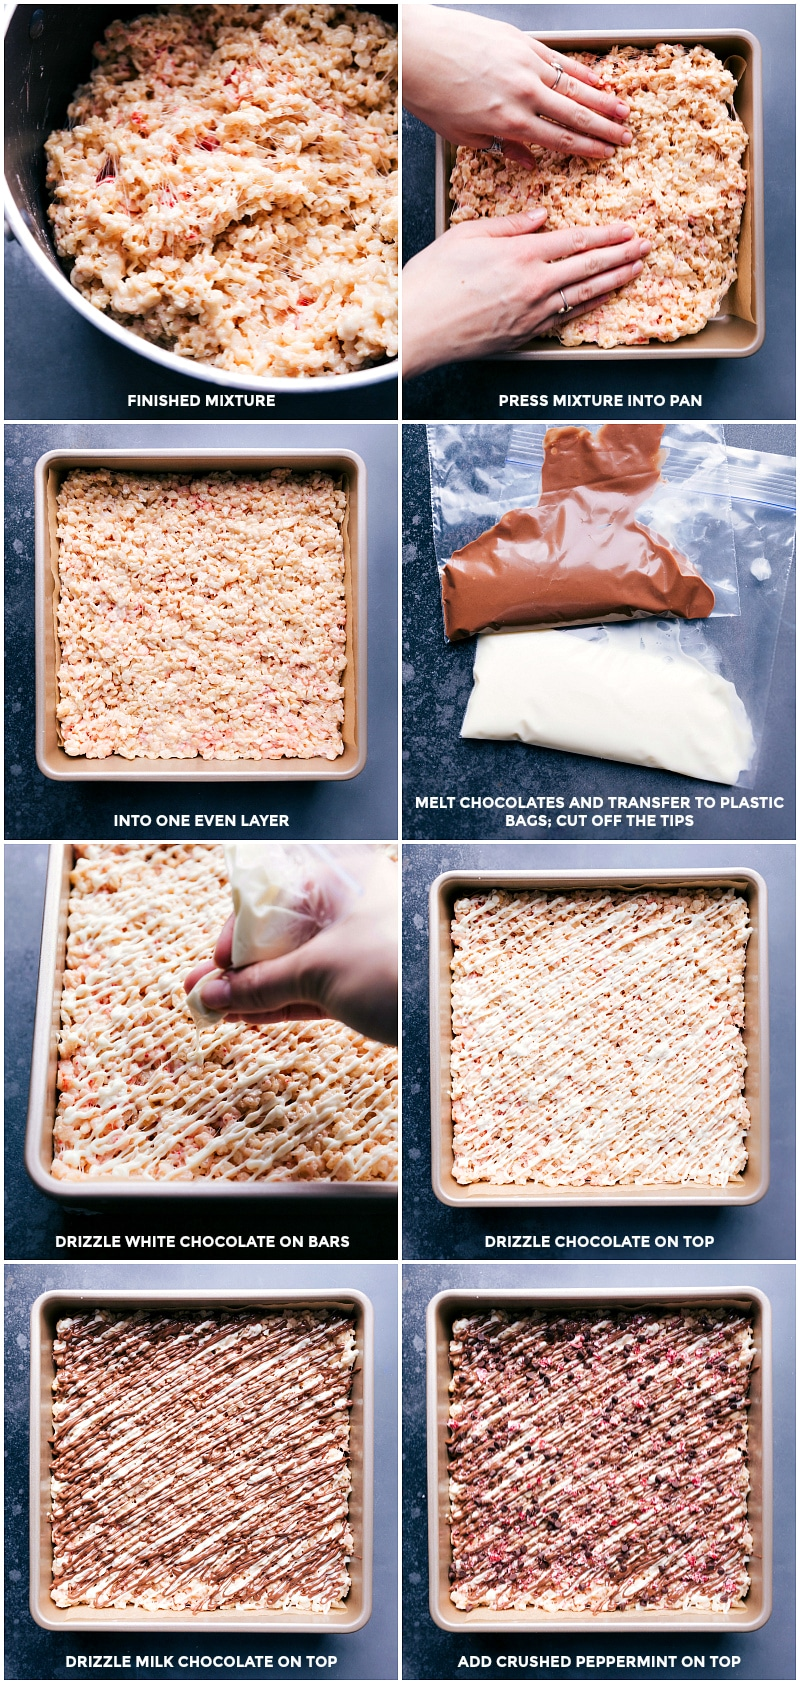 Process shots: Once krispie mixture is created, press into a pan; smooth into one layer; melt chocolates and transfer to plastic bags for piping; Drizzle with white chocolate; then milk chocolate; then crushed peppermint on top.